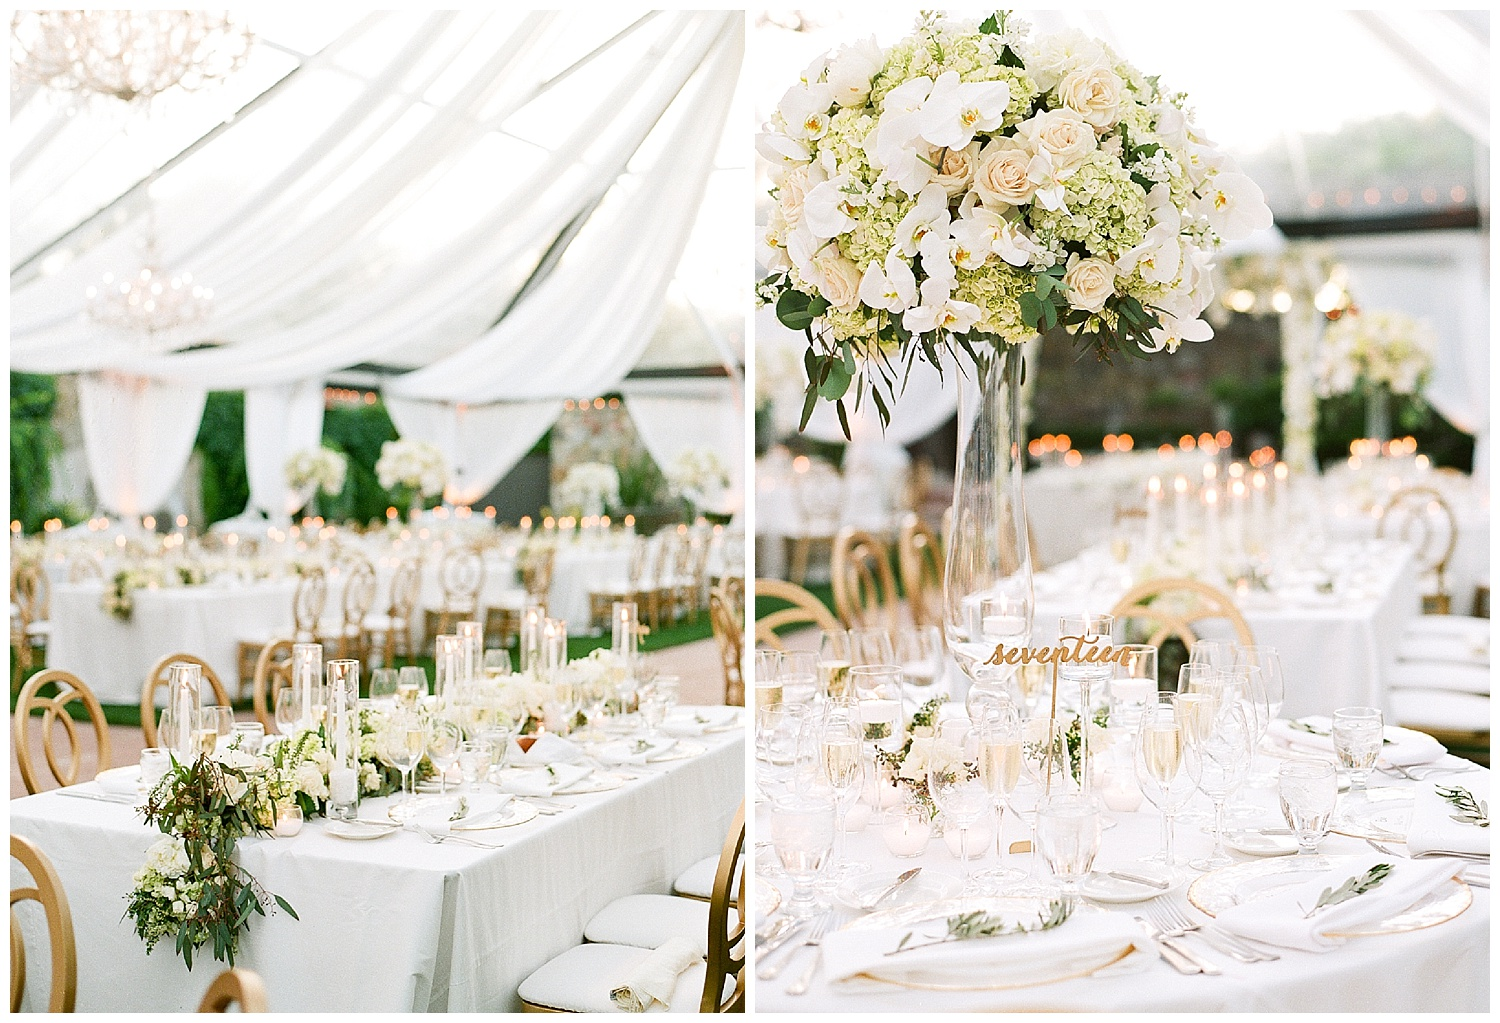 White florals and table settings complimented by gold accent chairs and table number markers; Sylvie Gil Photography